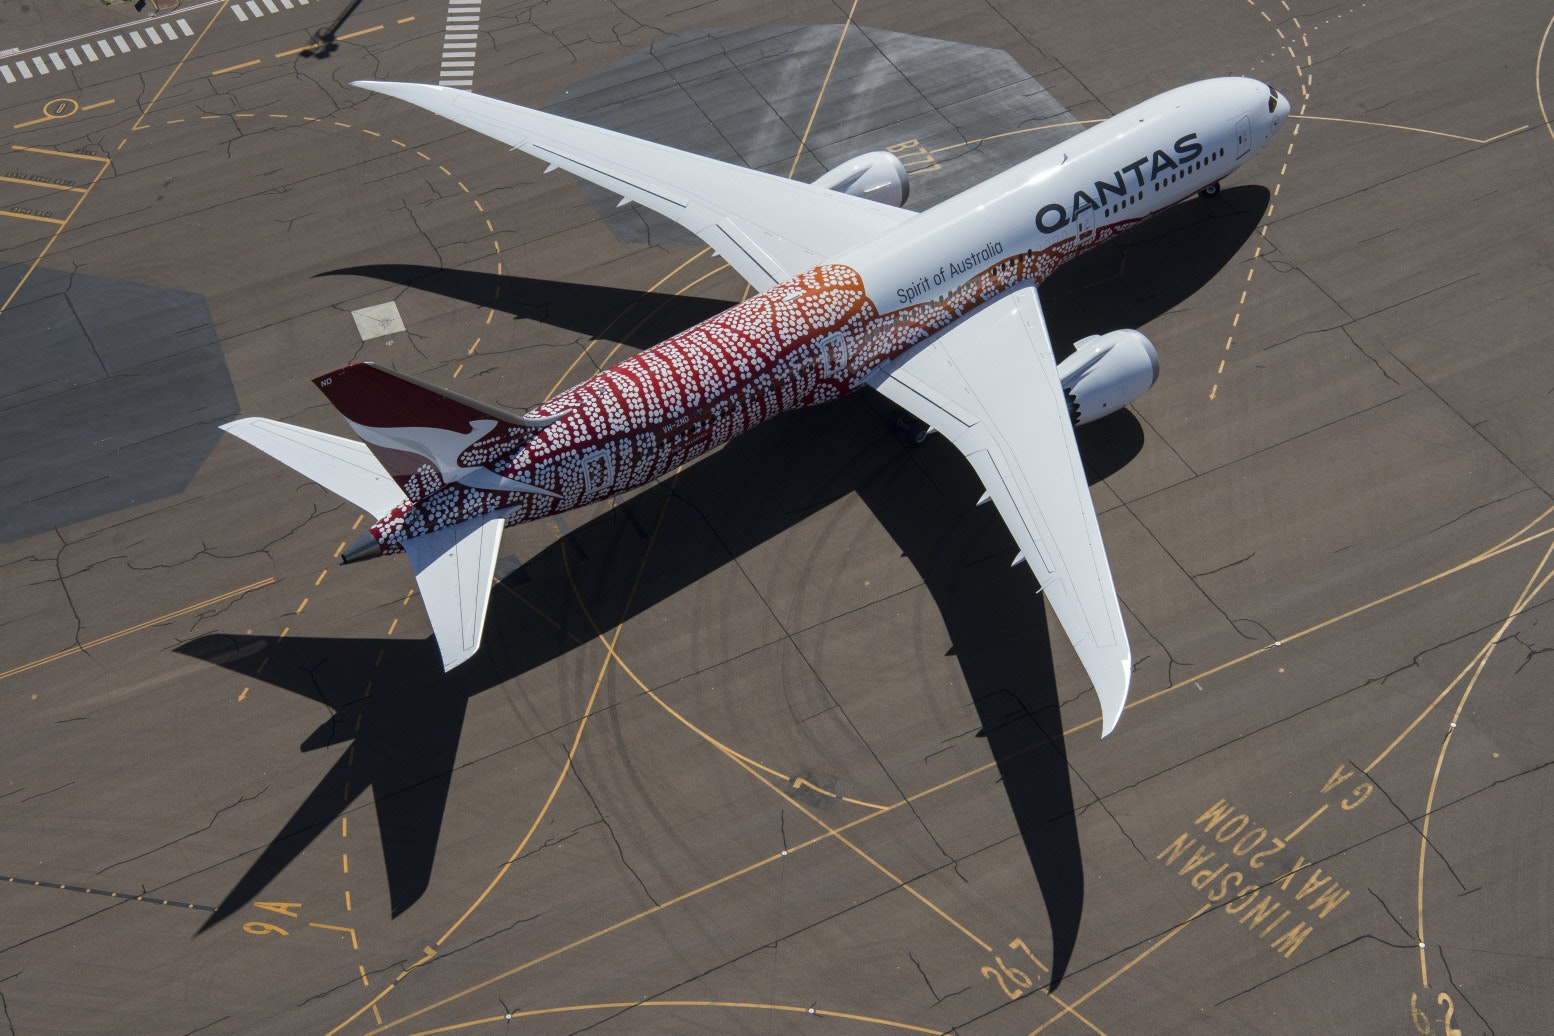 This is the fifth design in Qantas's flying art series.